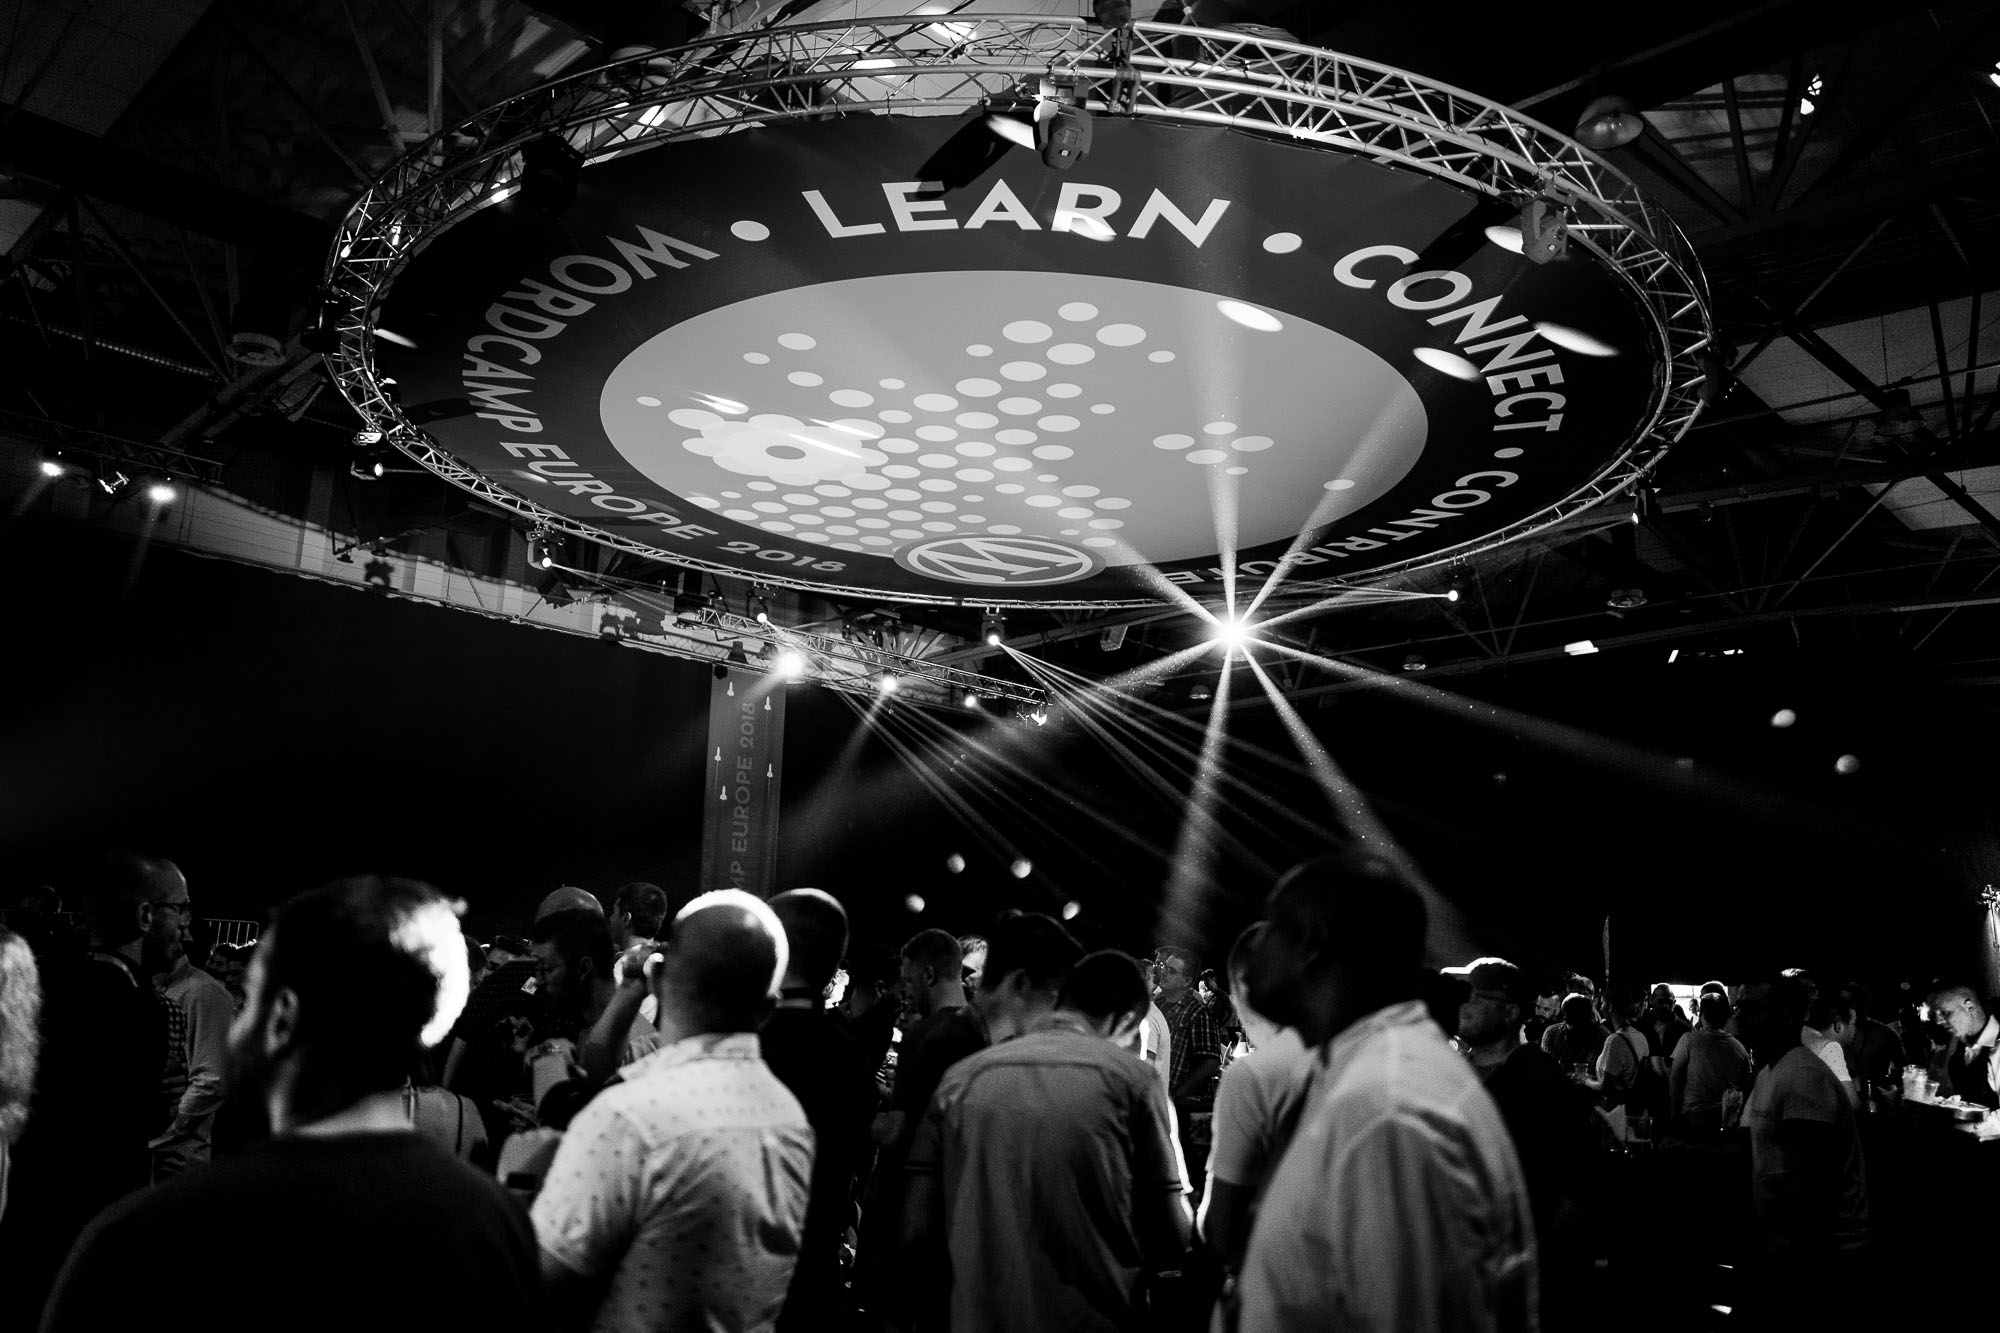 WCEU banner illuminated by party lights